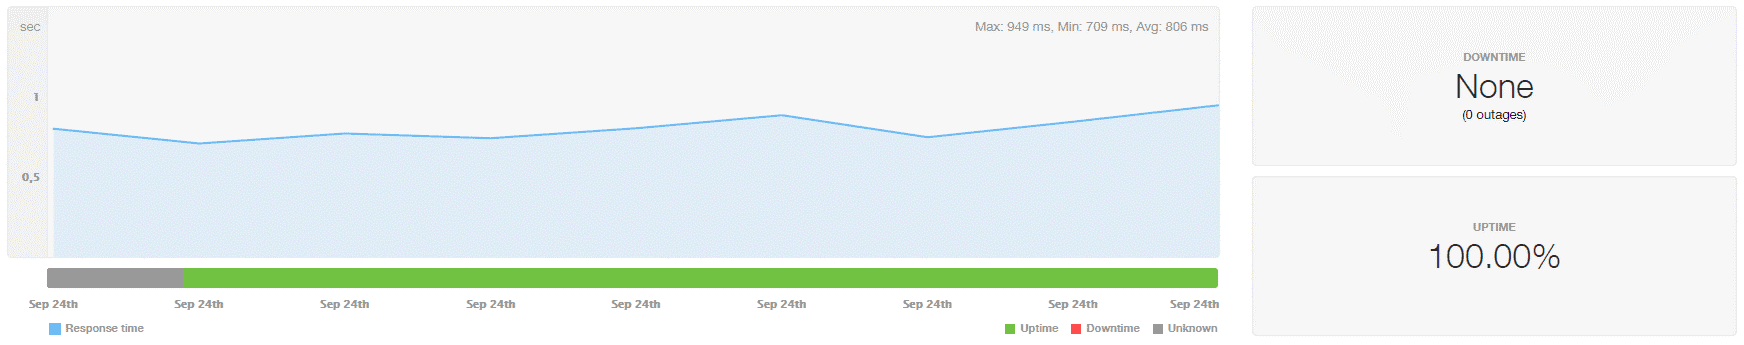 bluehost uptime throughout the year